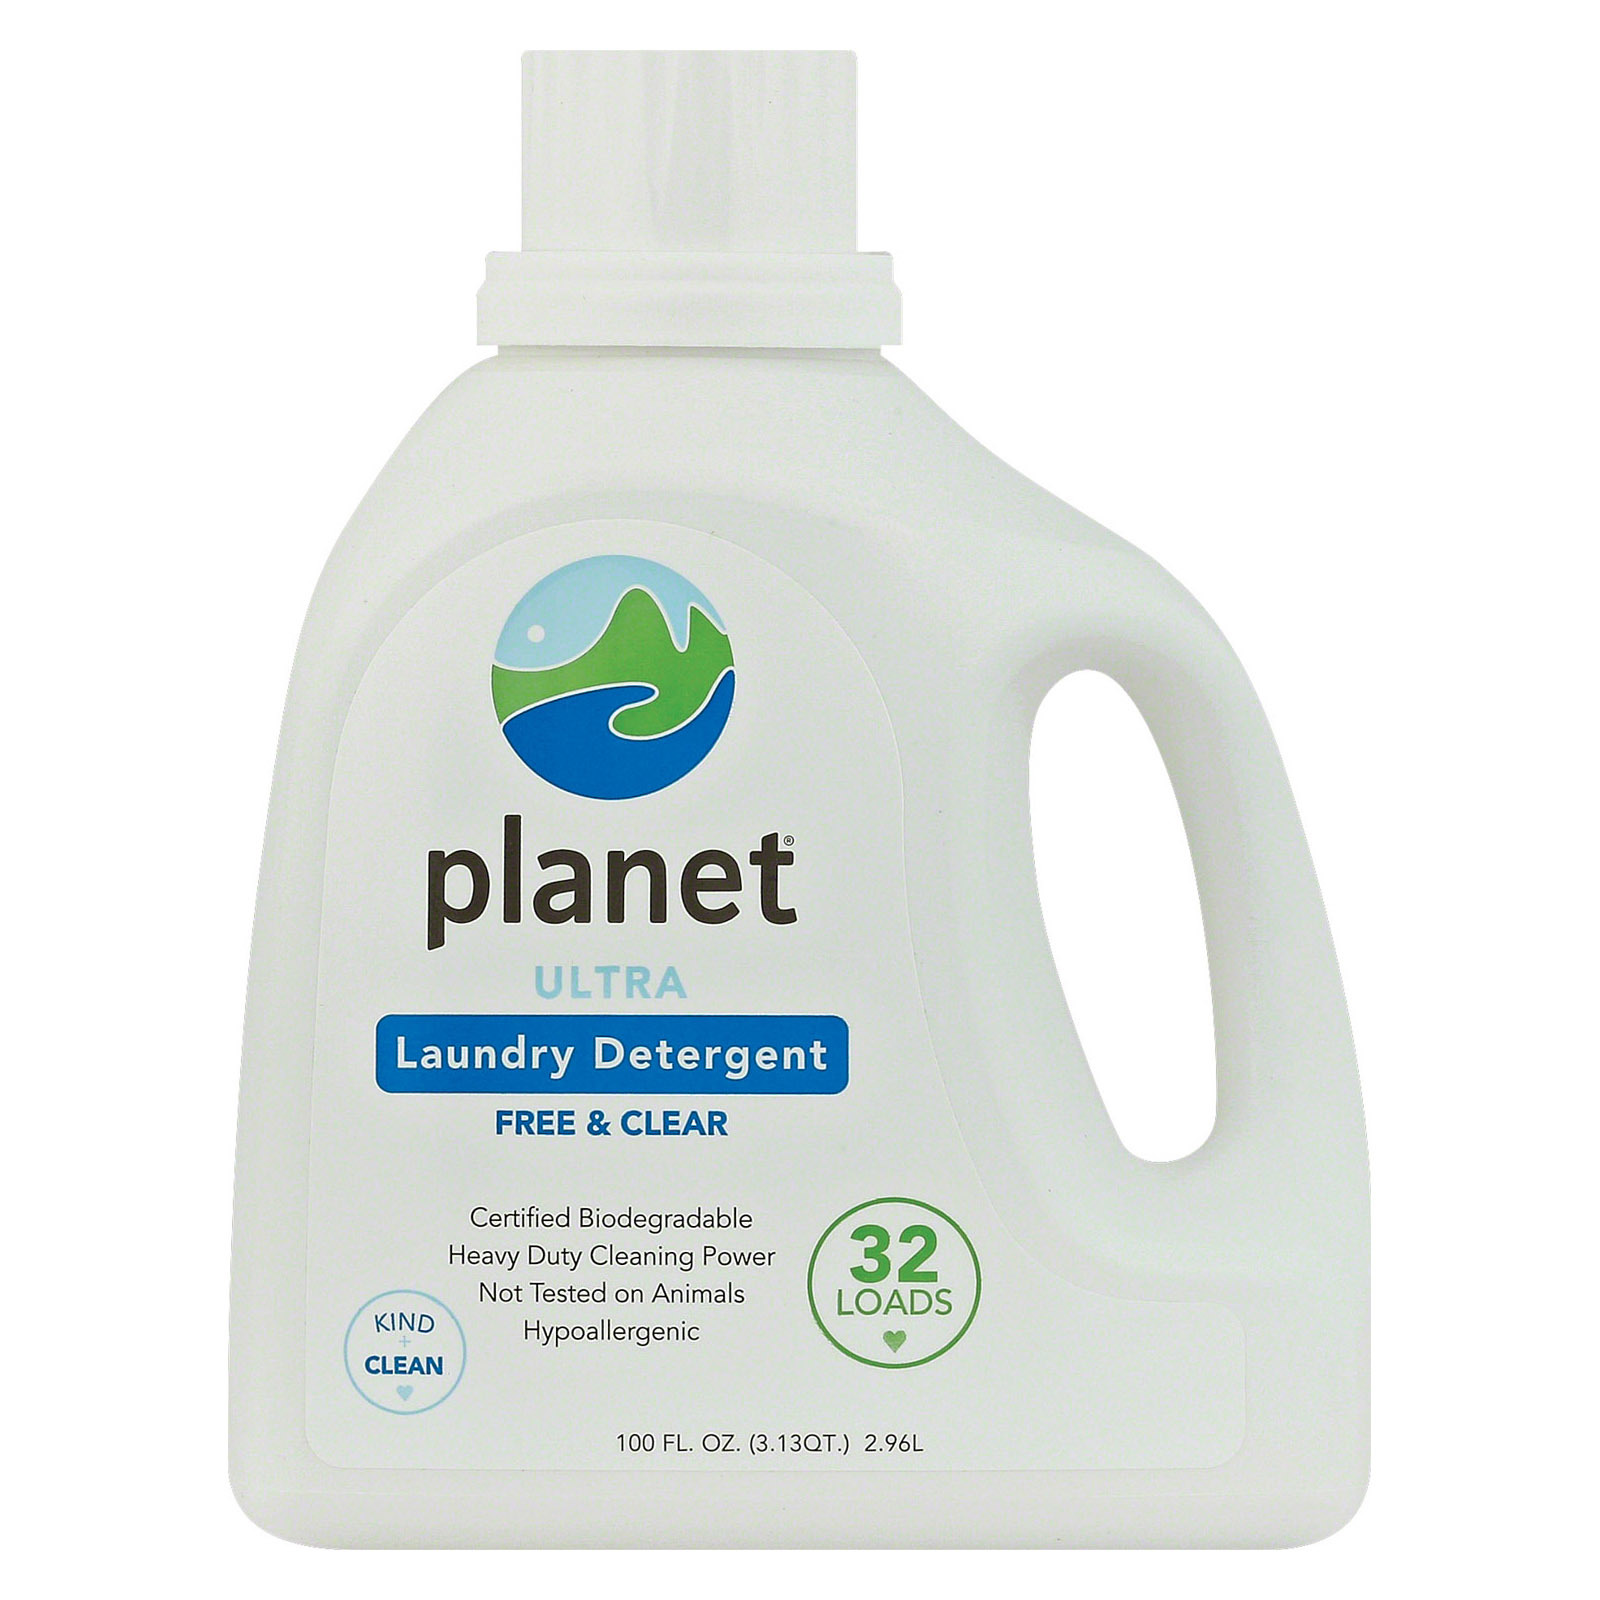 Planet Ultra Powdered Laundry Detergent - - Case of 4 - 100 Fl oz.